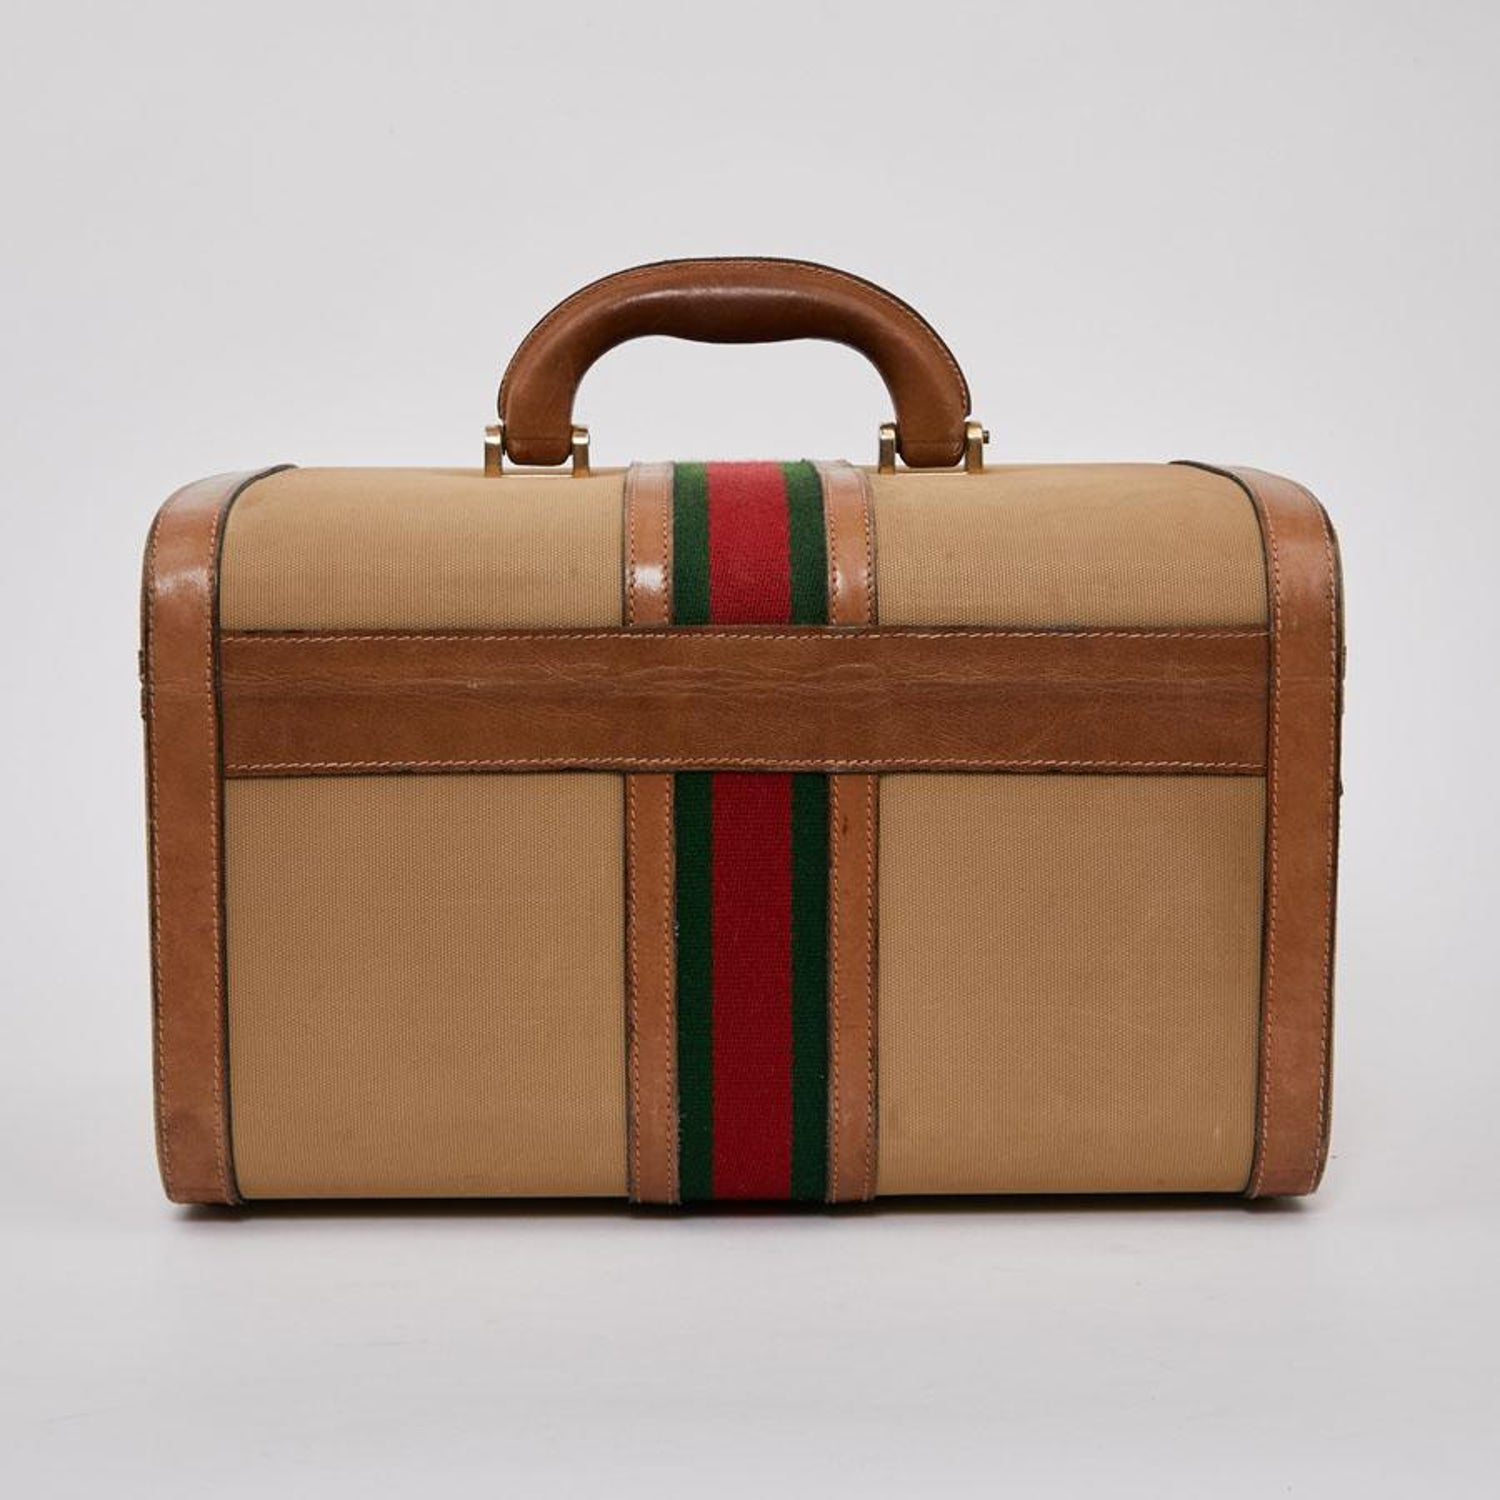 74129d5cf GUCCI Vintage Vanity Case in Beige and Brown Canvas and Leather For Sale at  1stdibs